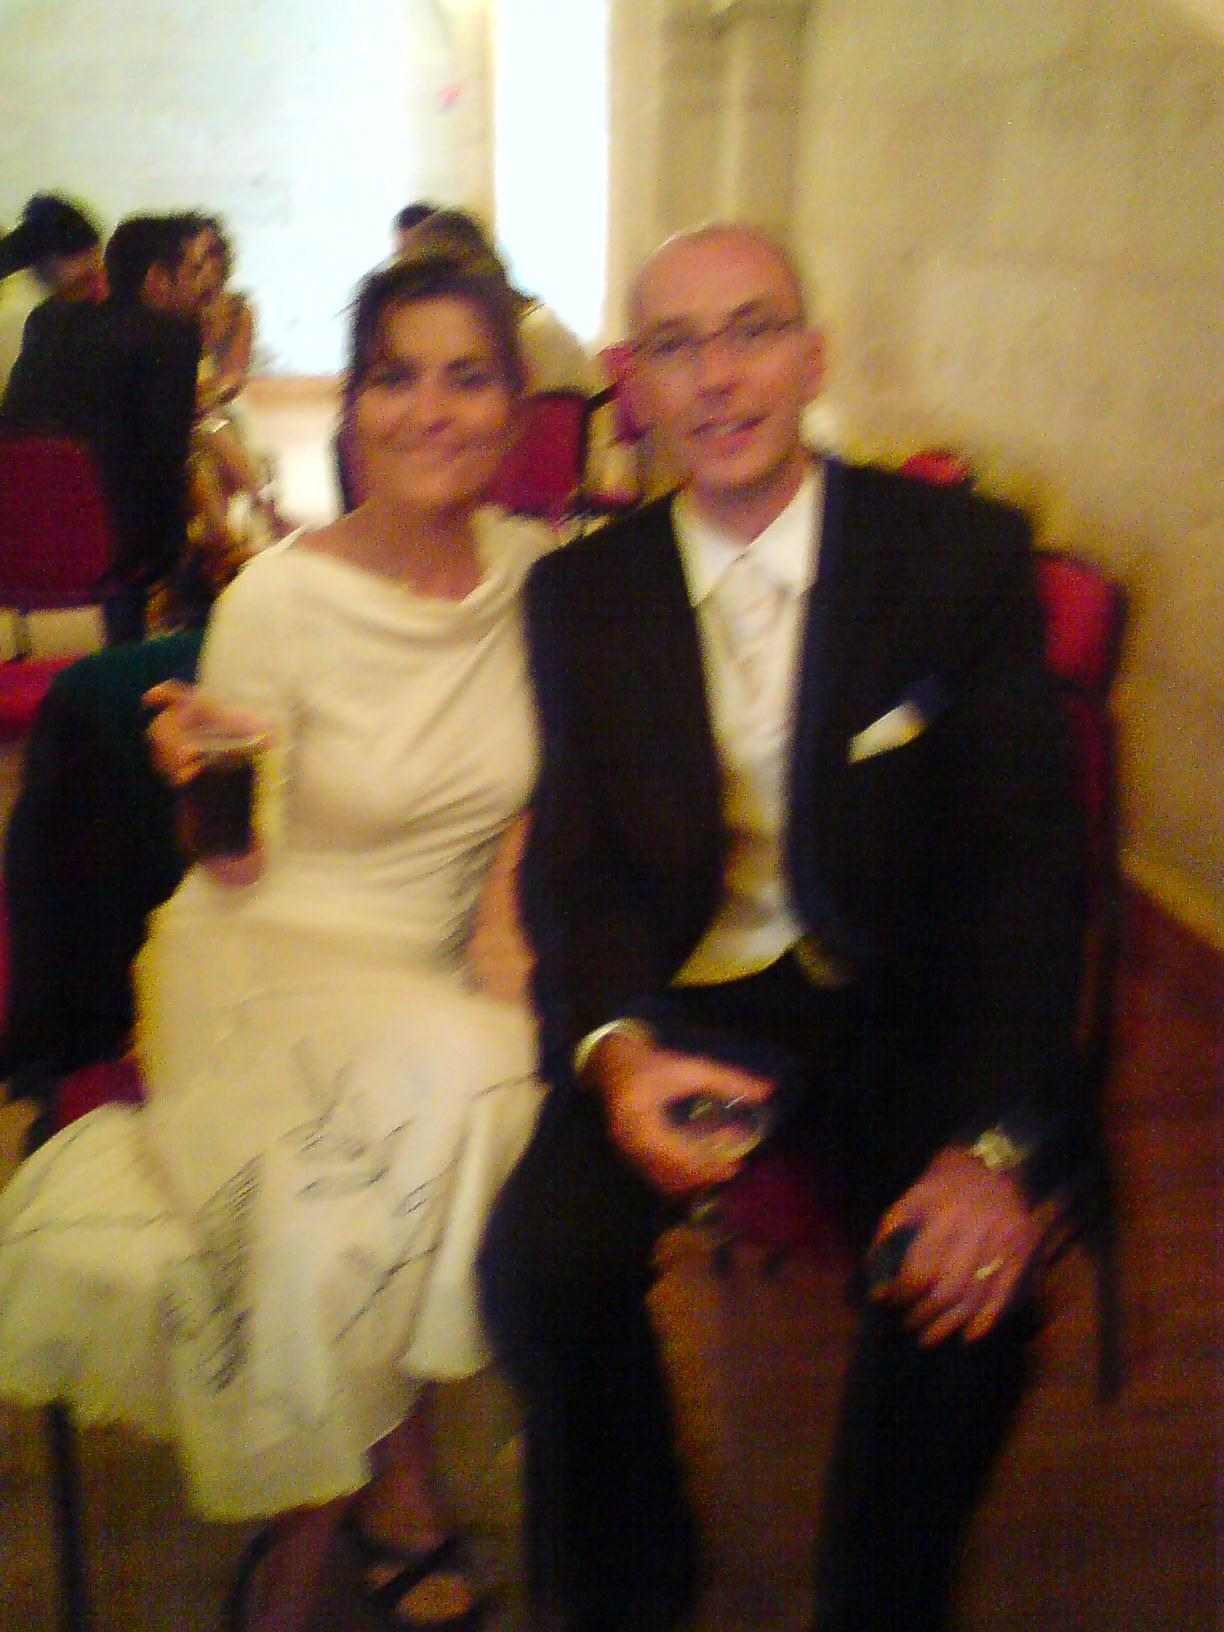 http://ddata.over-blog.com/xxxyyy/0/31/24/18/mariage-seb-et-fanny-31-05-08/DSC01290_PhotoRedukto.jpg